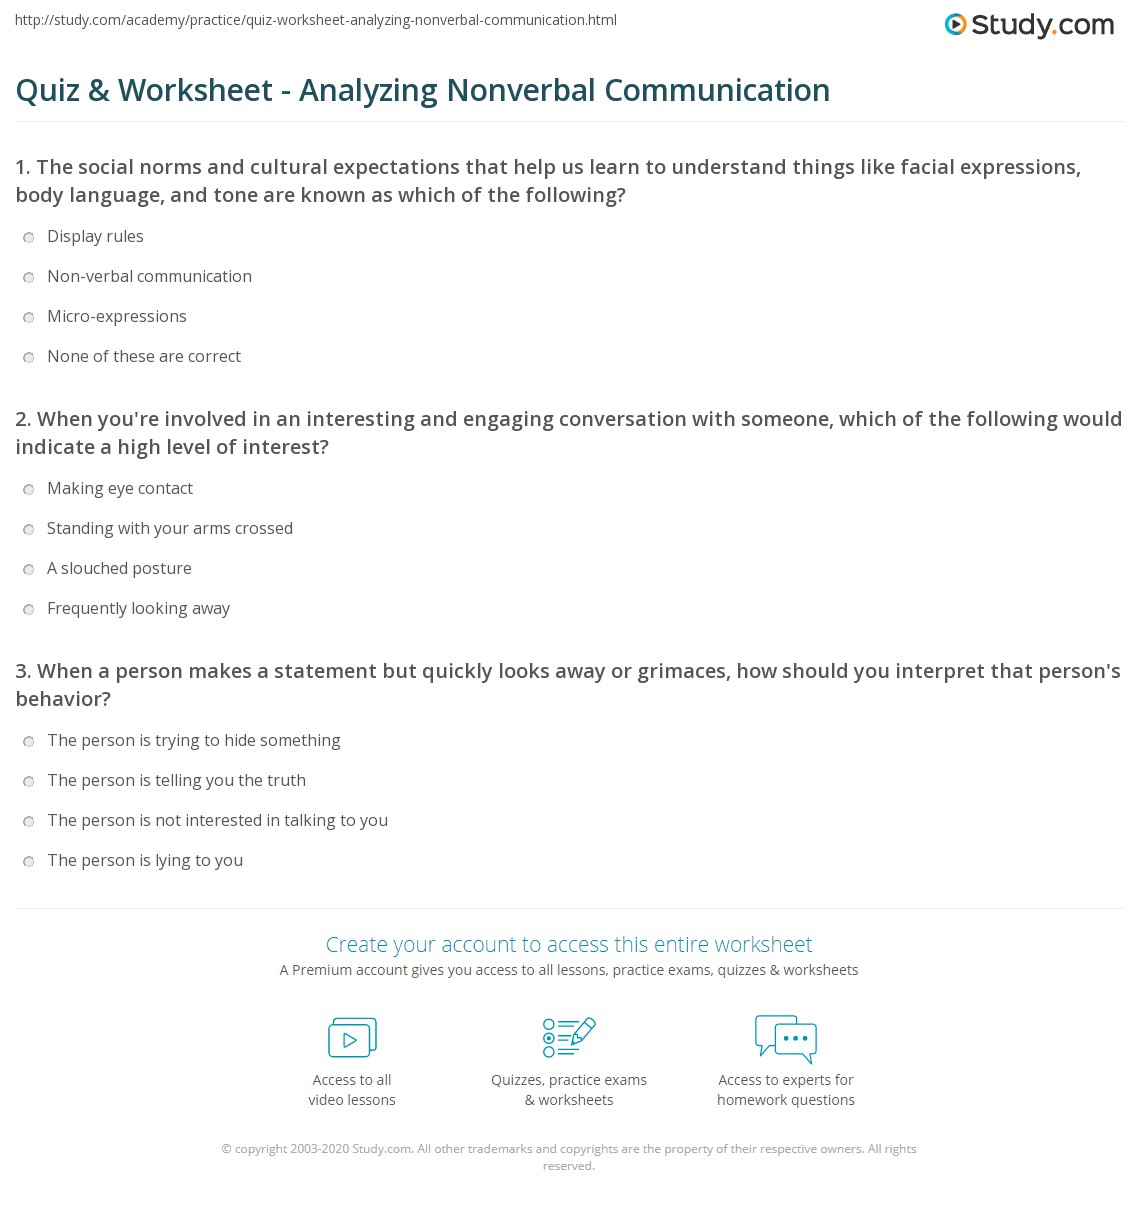 nonverbal communication essay quiz amp worksheet analyzing nonverbal communication study com quiz amp worksheet analyzing nonverbal communication study com